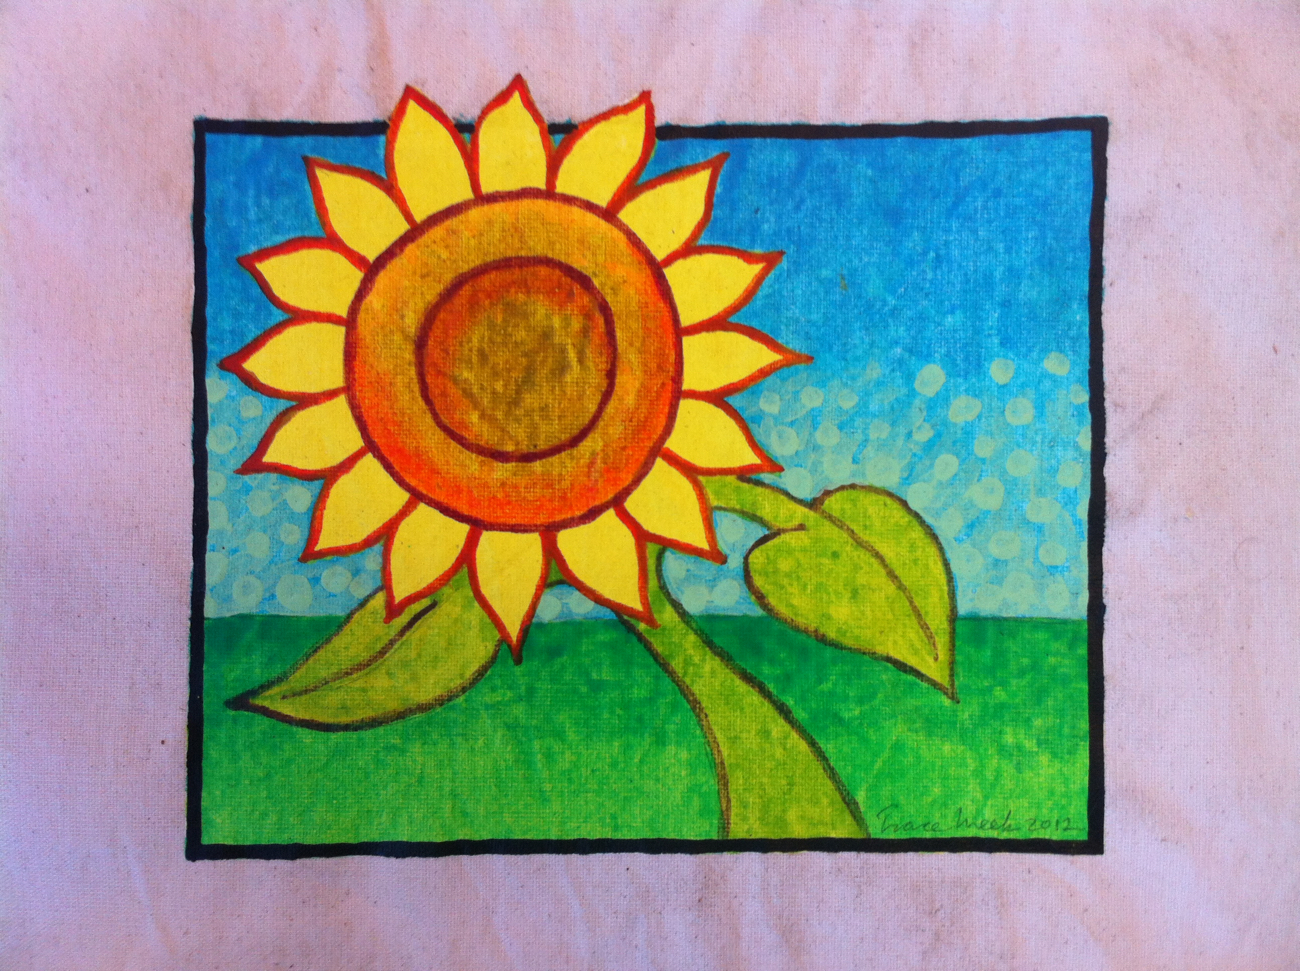 Sunflower Image